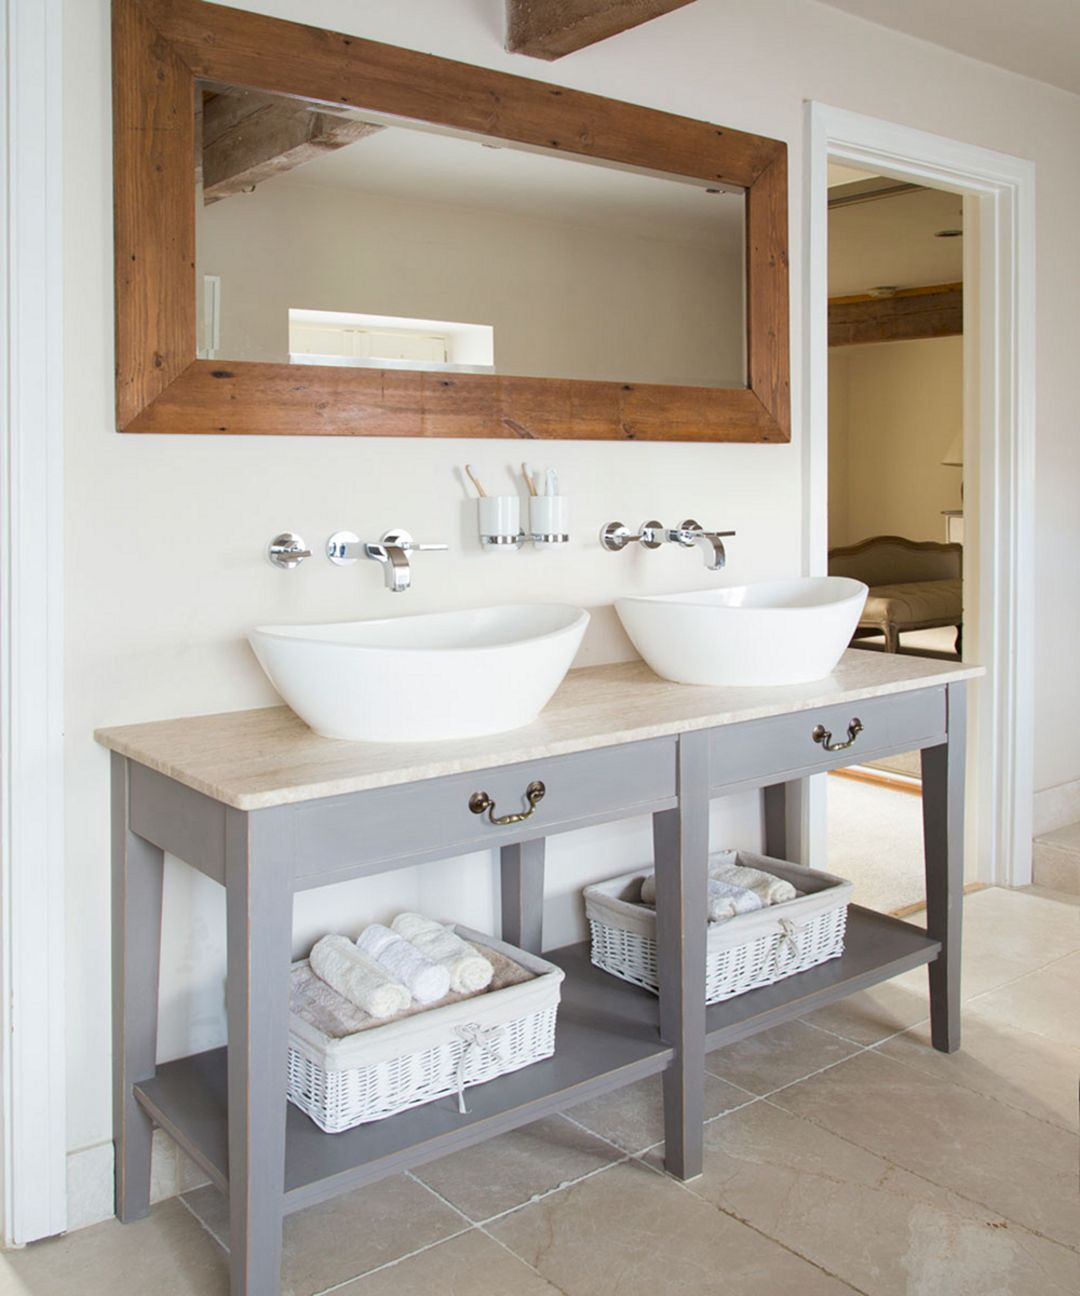 15+ Bathroom Sink Ideas That You Have To Copy in 2020 ...